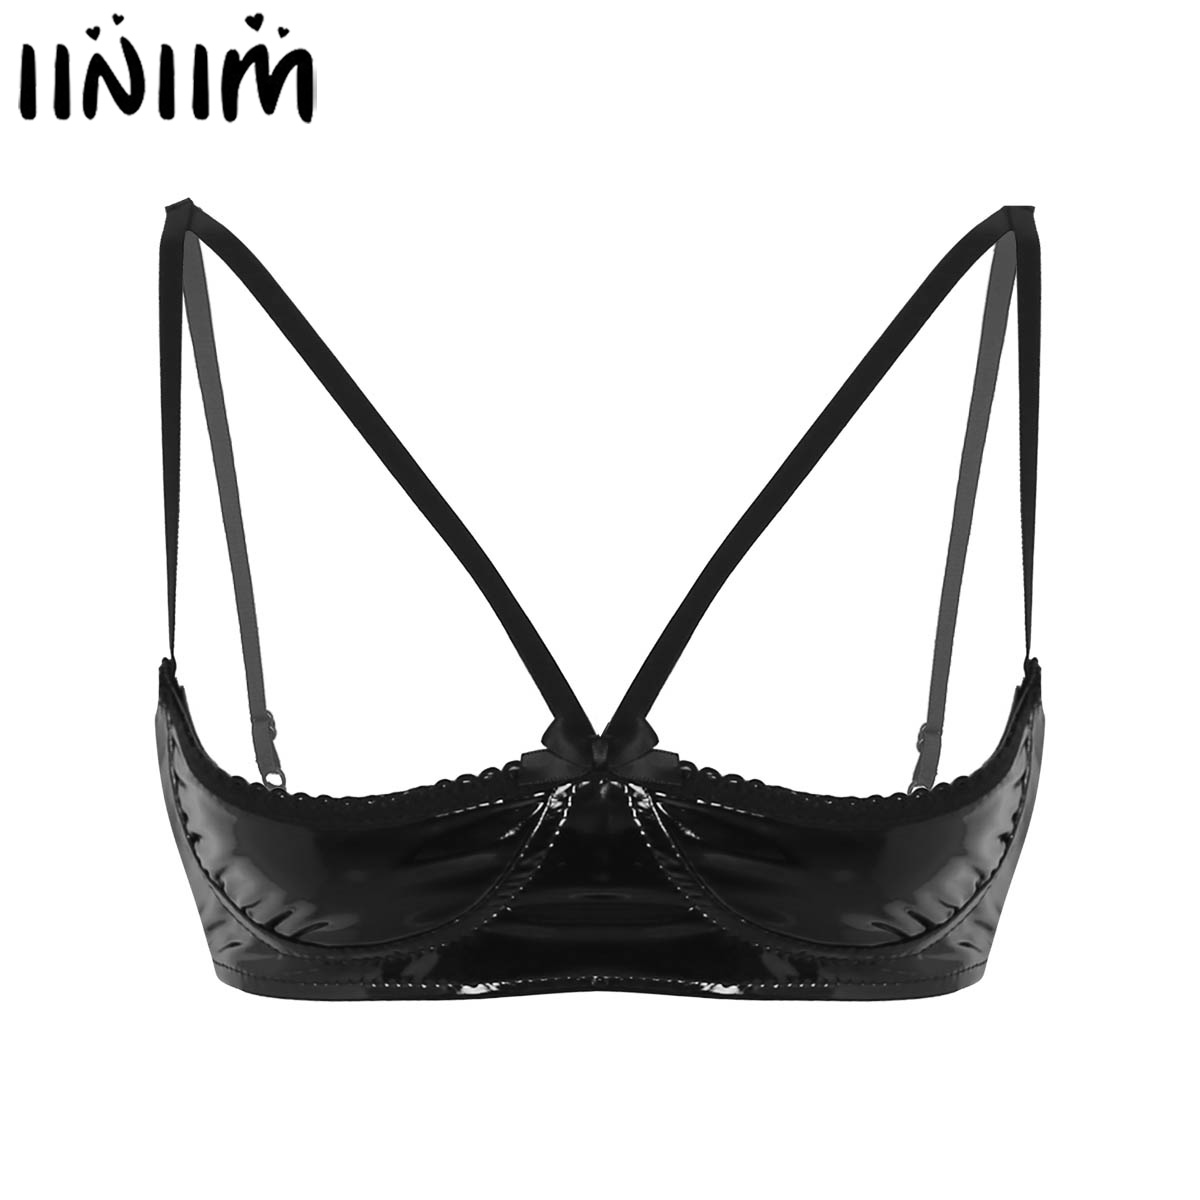 Womens Faux Leather Exotic Lingerie Nightwear Open Bras Sheer Sexy Tanks Vest Tops Wire-free Unlined Bra For Night  Party Bras